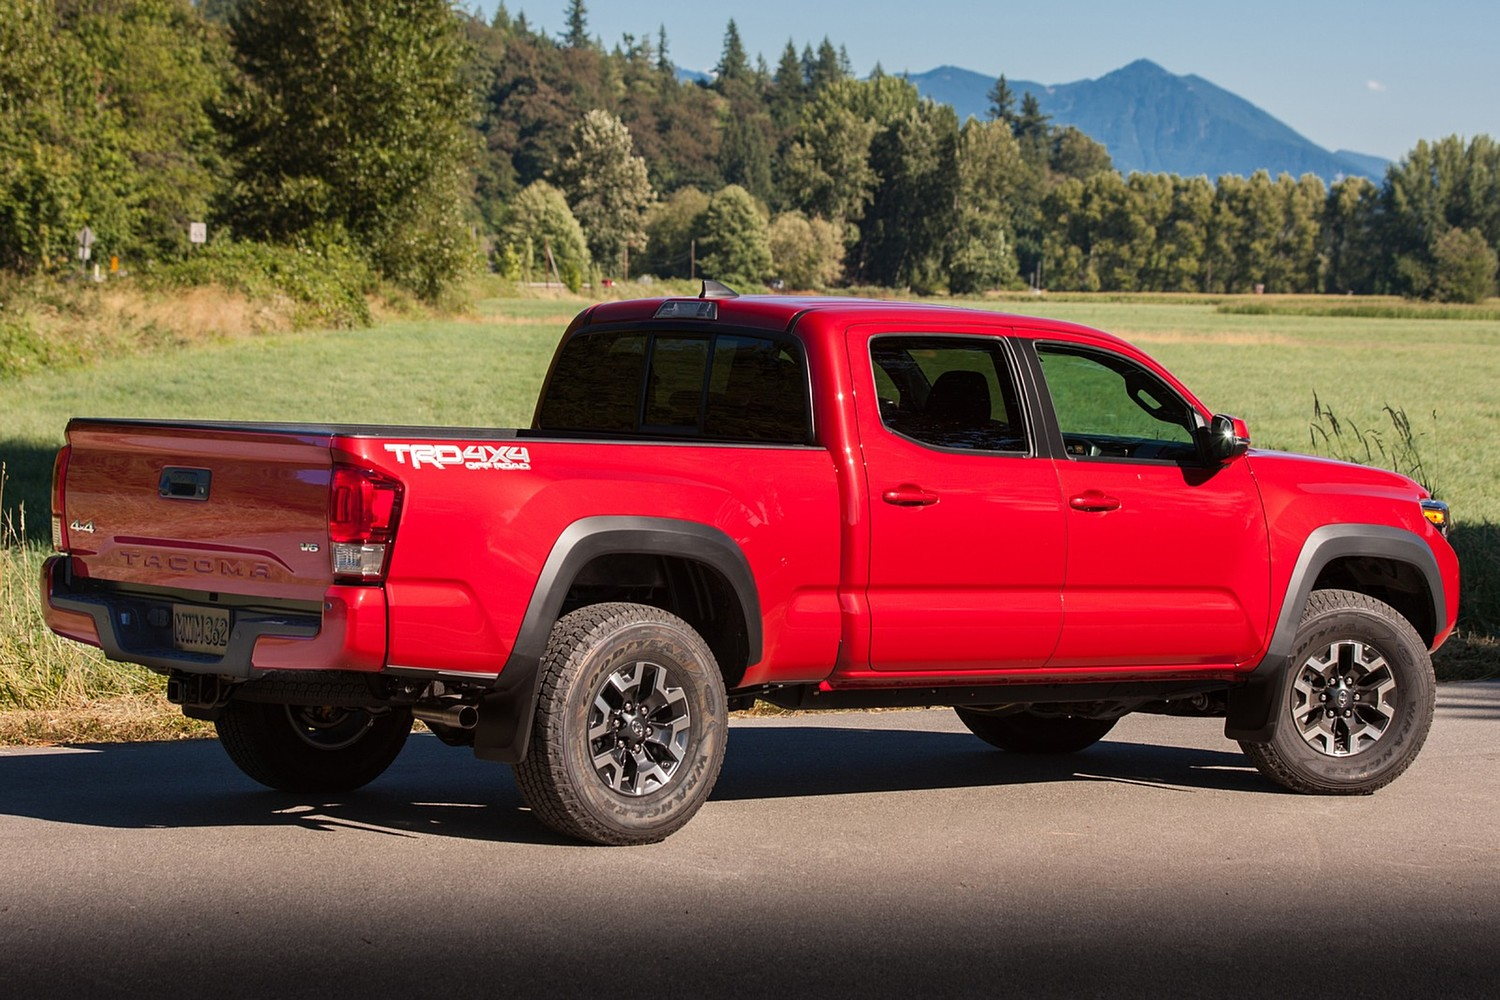 2016 Toyota Tacoma TRD Off Road Crew Cab Pickup Exterior Shown